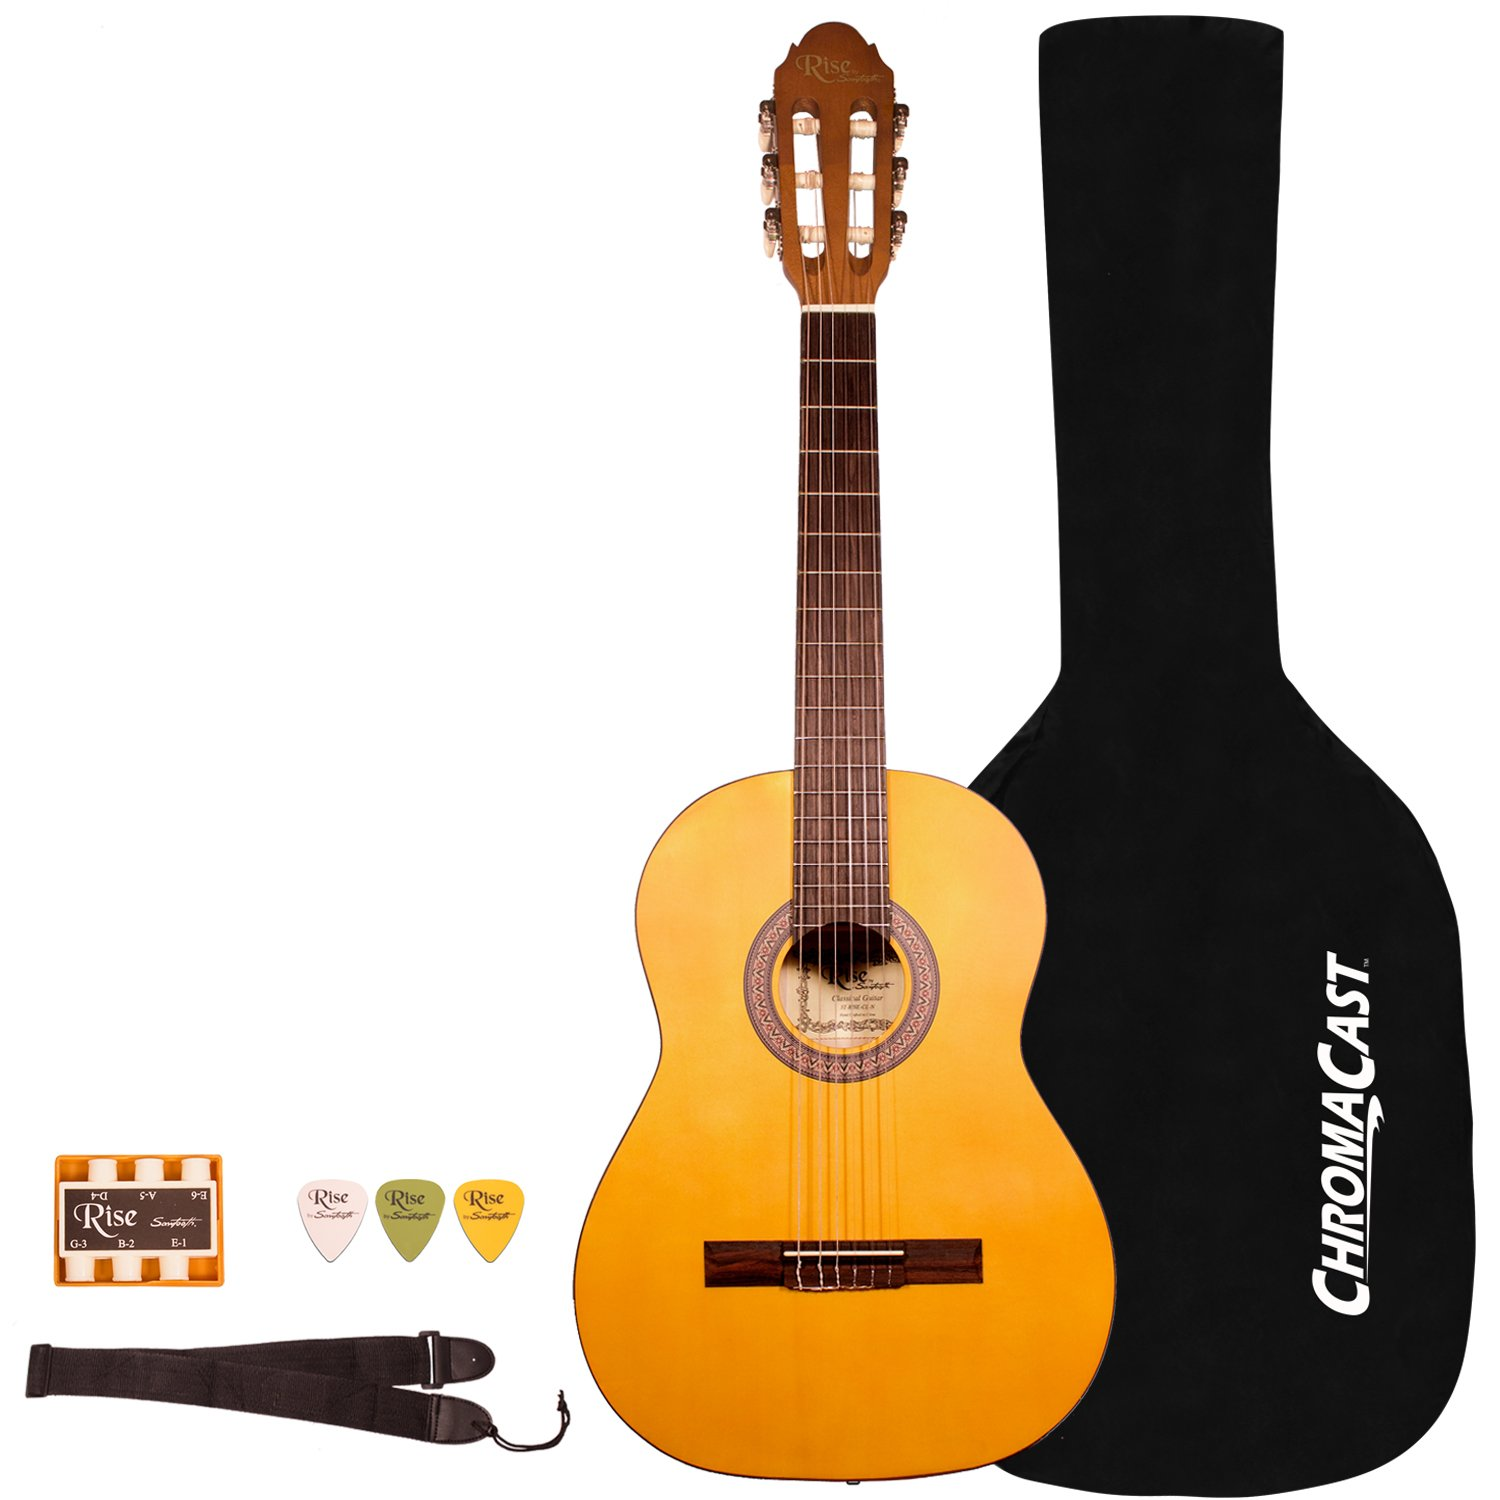 Rise by Sawtooth 6 String Acoustic Guitar Pack (ST-RISE-CL-3/4-N-KIT-2) GO-DPS